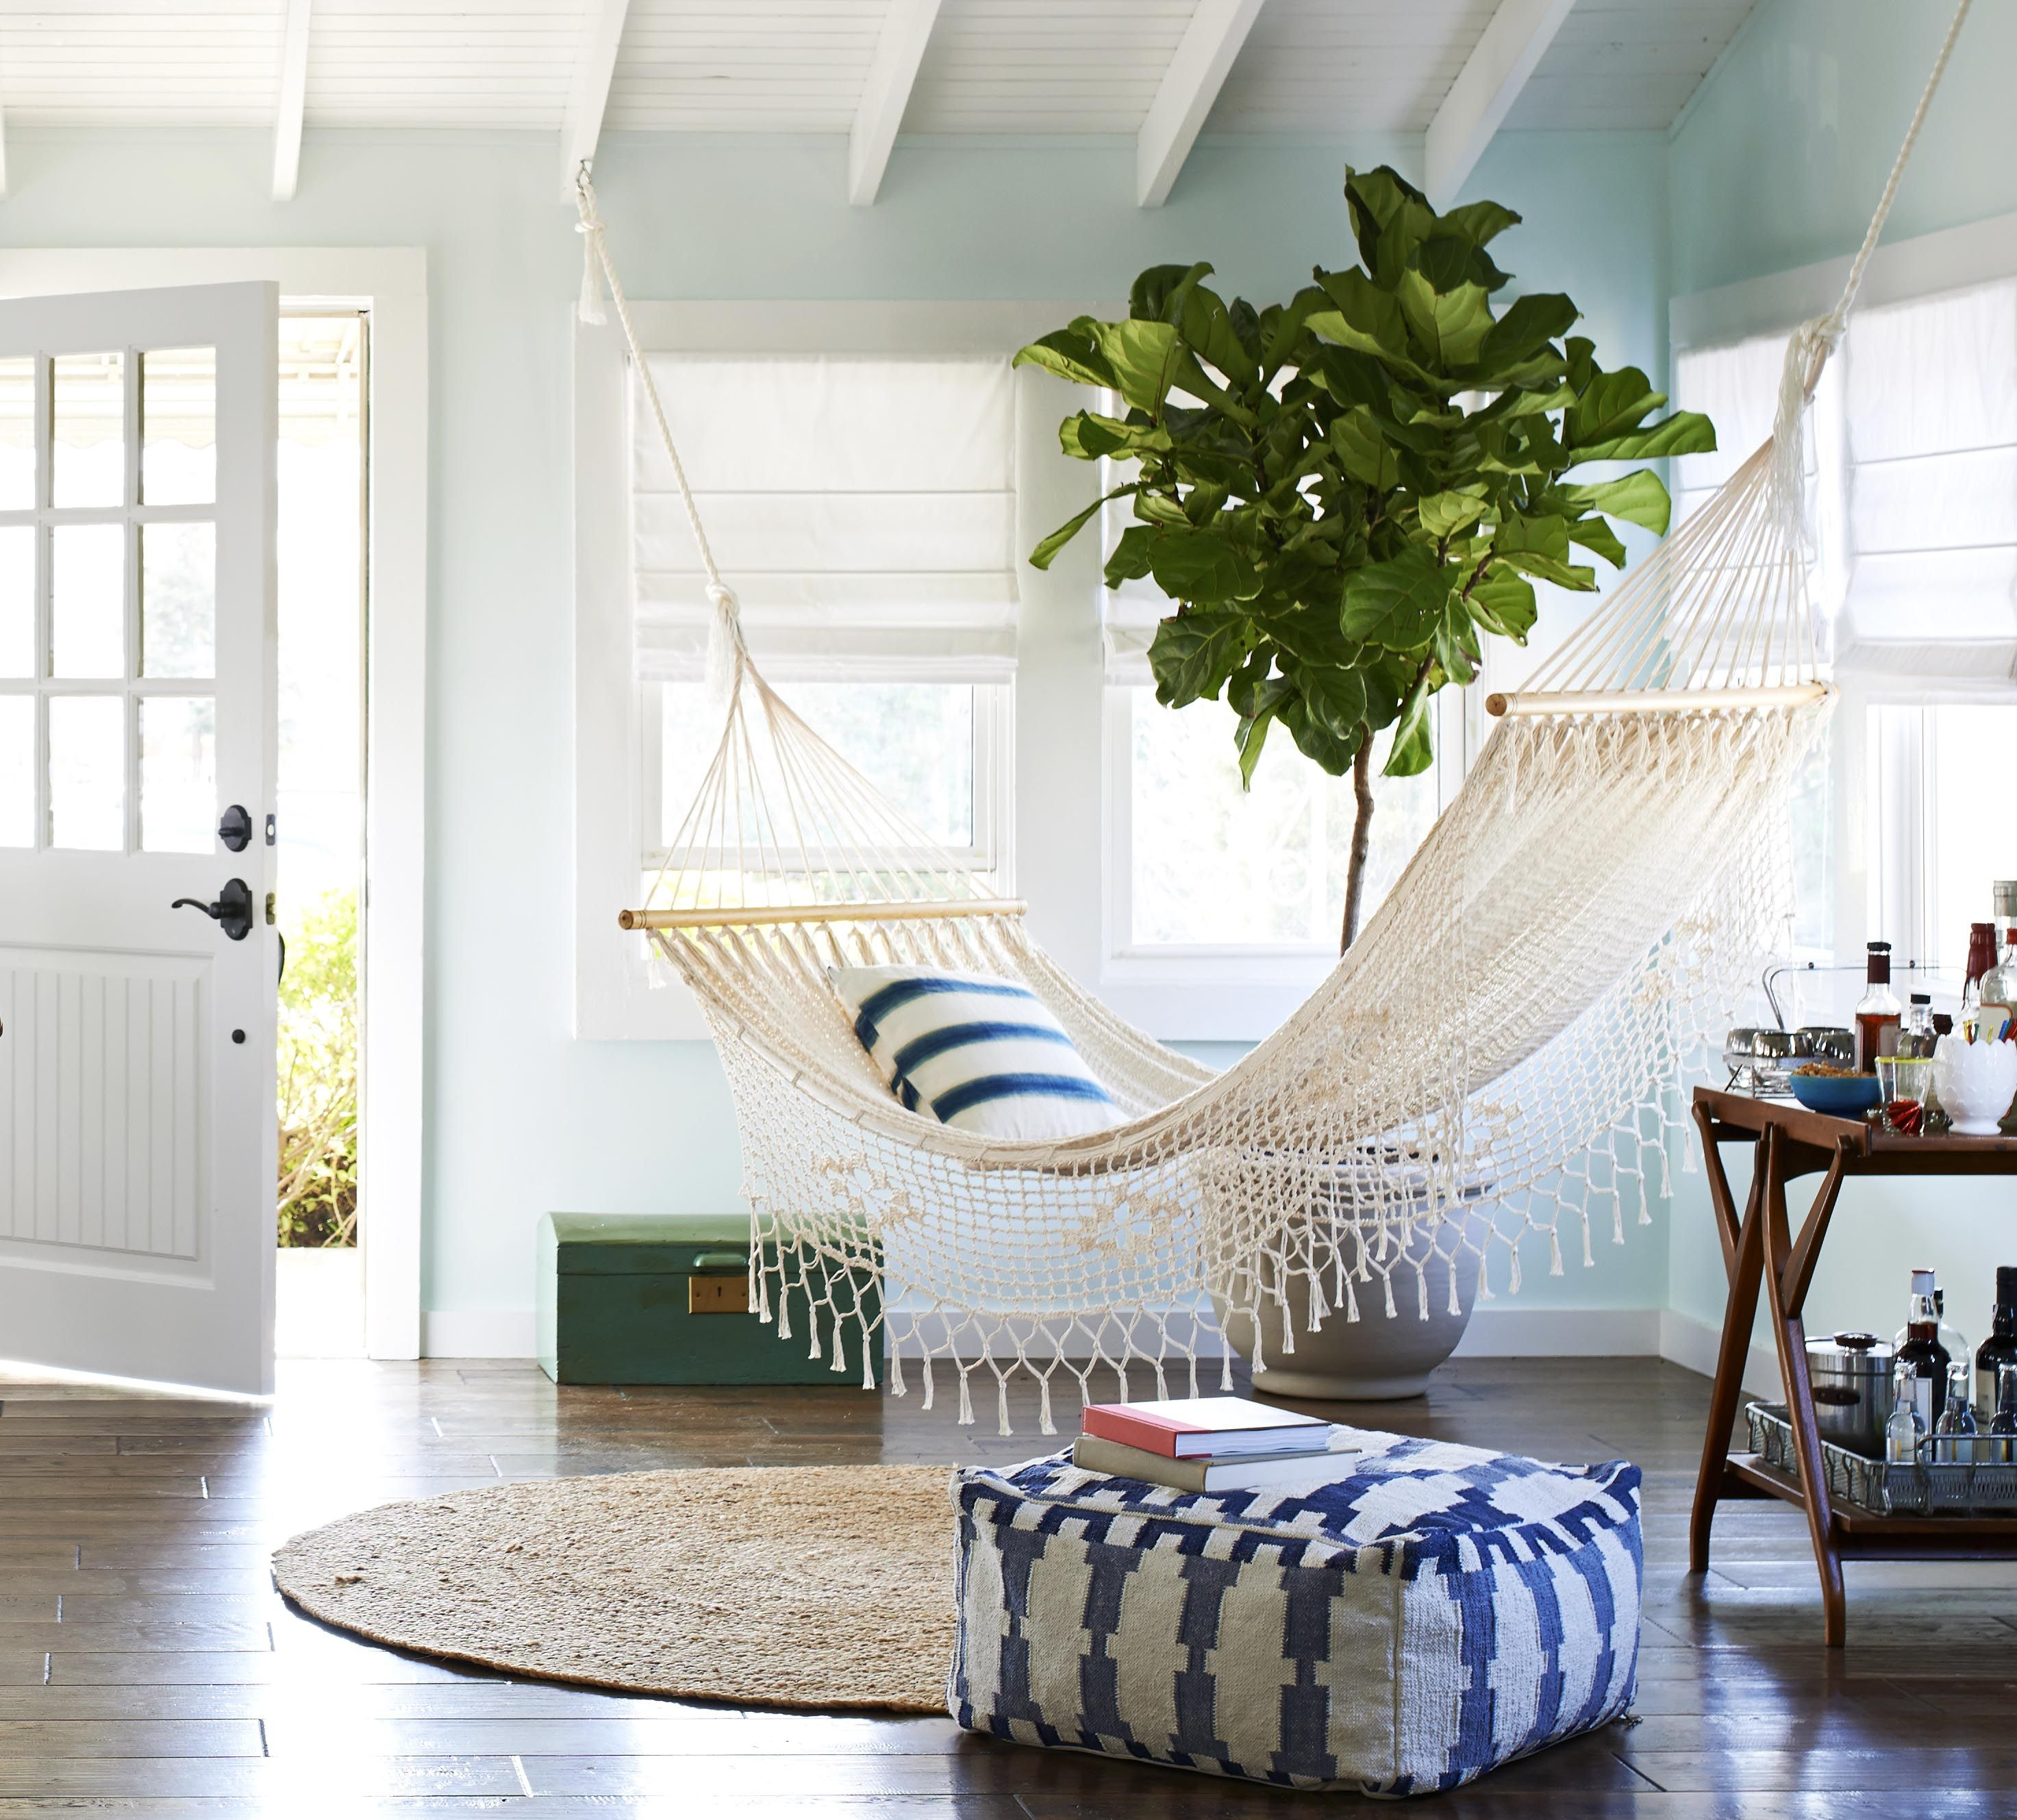 Create an outdoor chill out space indoors with a hammock for the